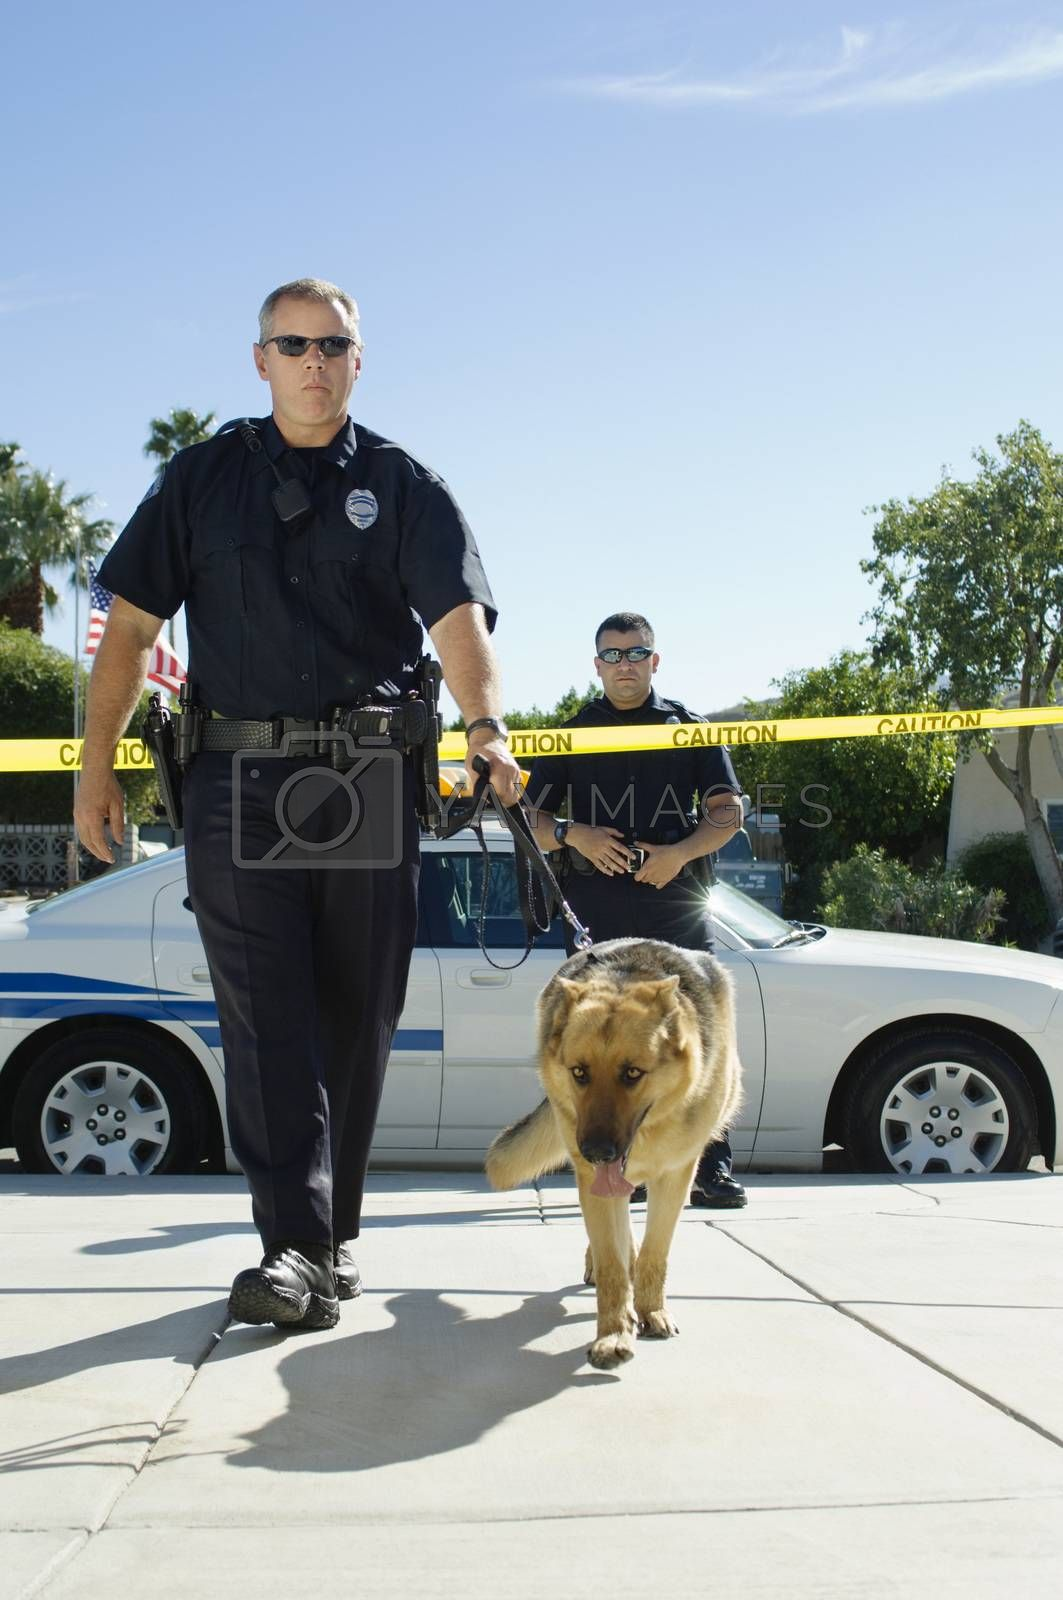 Police Officer With Dog